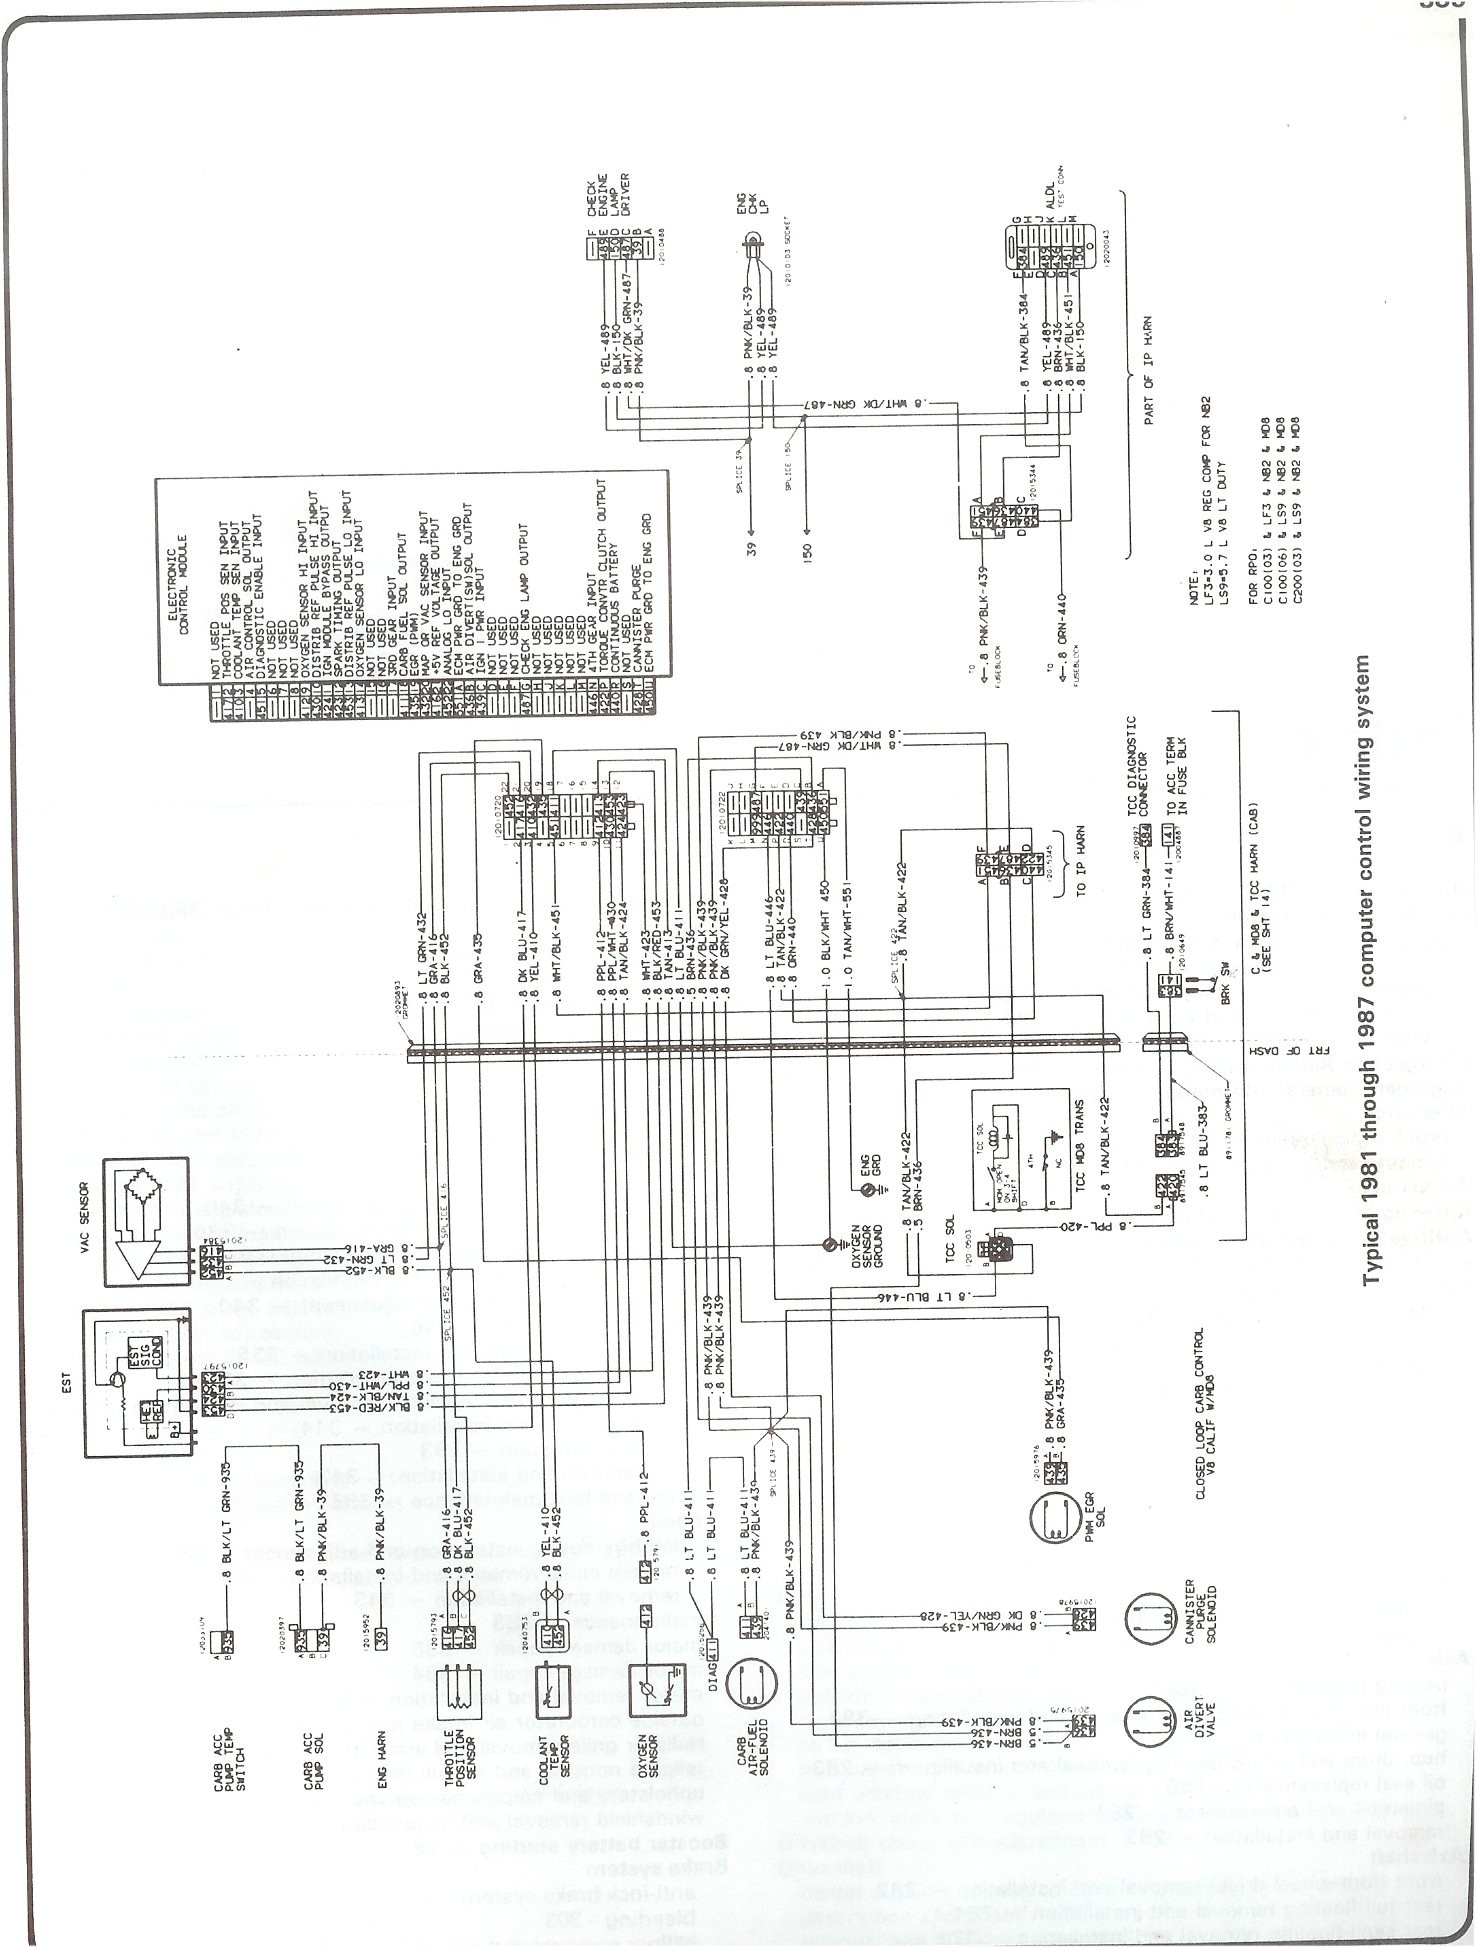 1986 Chevy Truck Fuse Box Diagram Wiring Harness Chevy